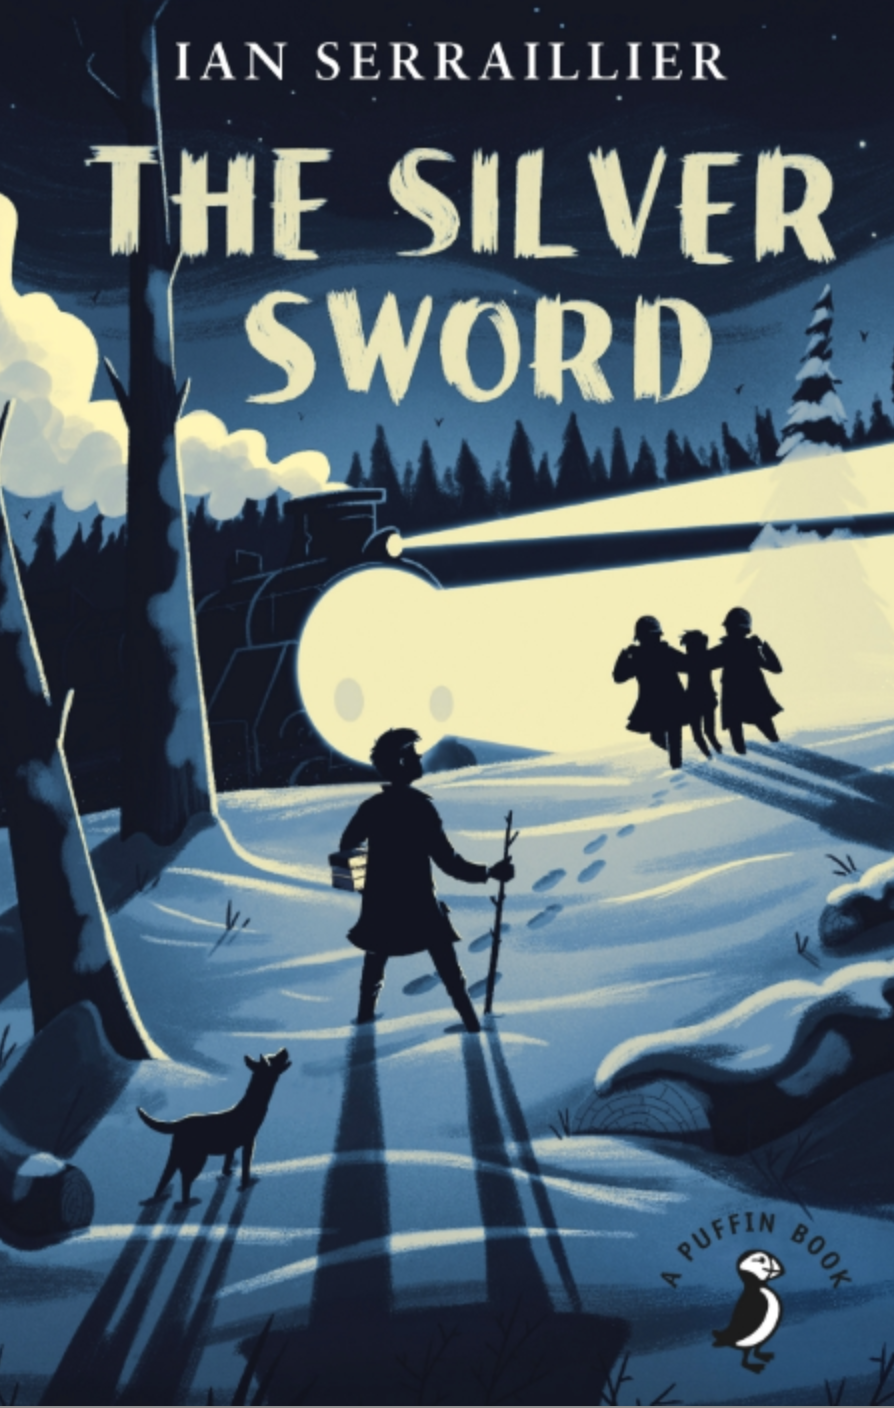 The Silver Sword - By Ian SerraillierA war-time adventure – another one my son couldn't put down, and when his nana saw him reading it, remarked: